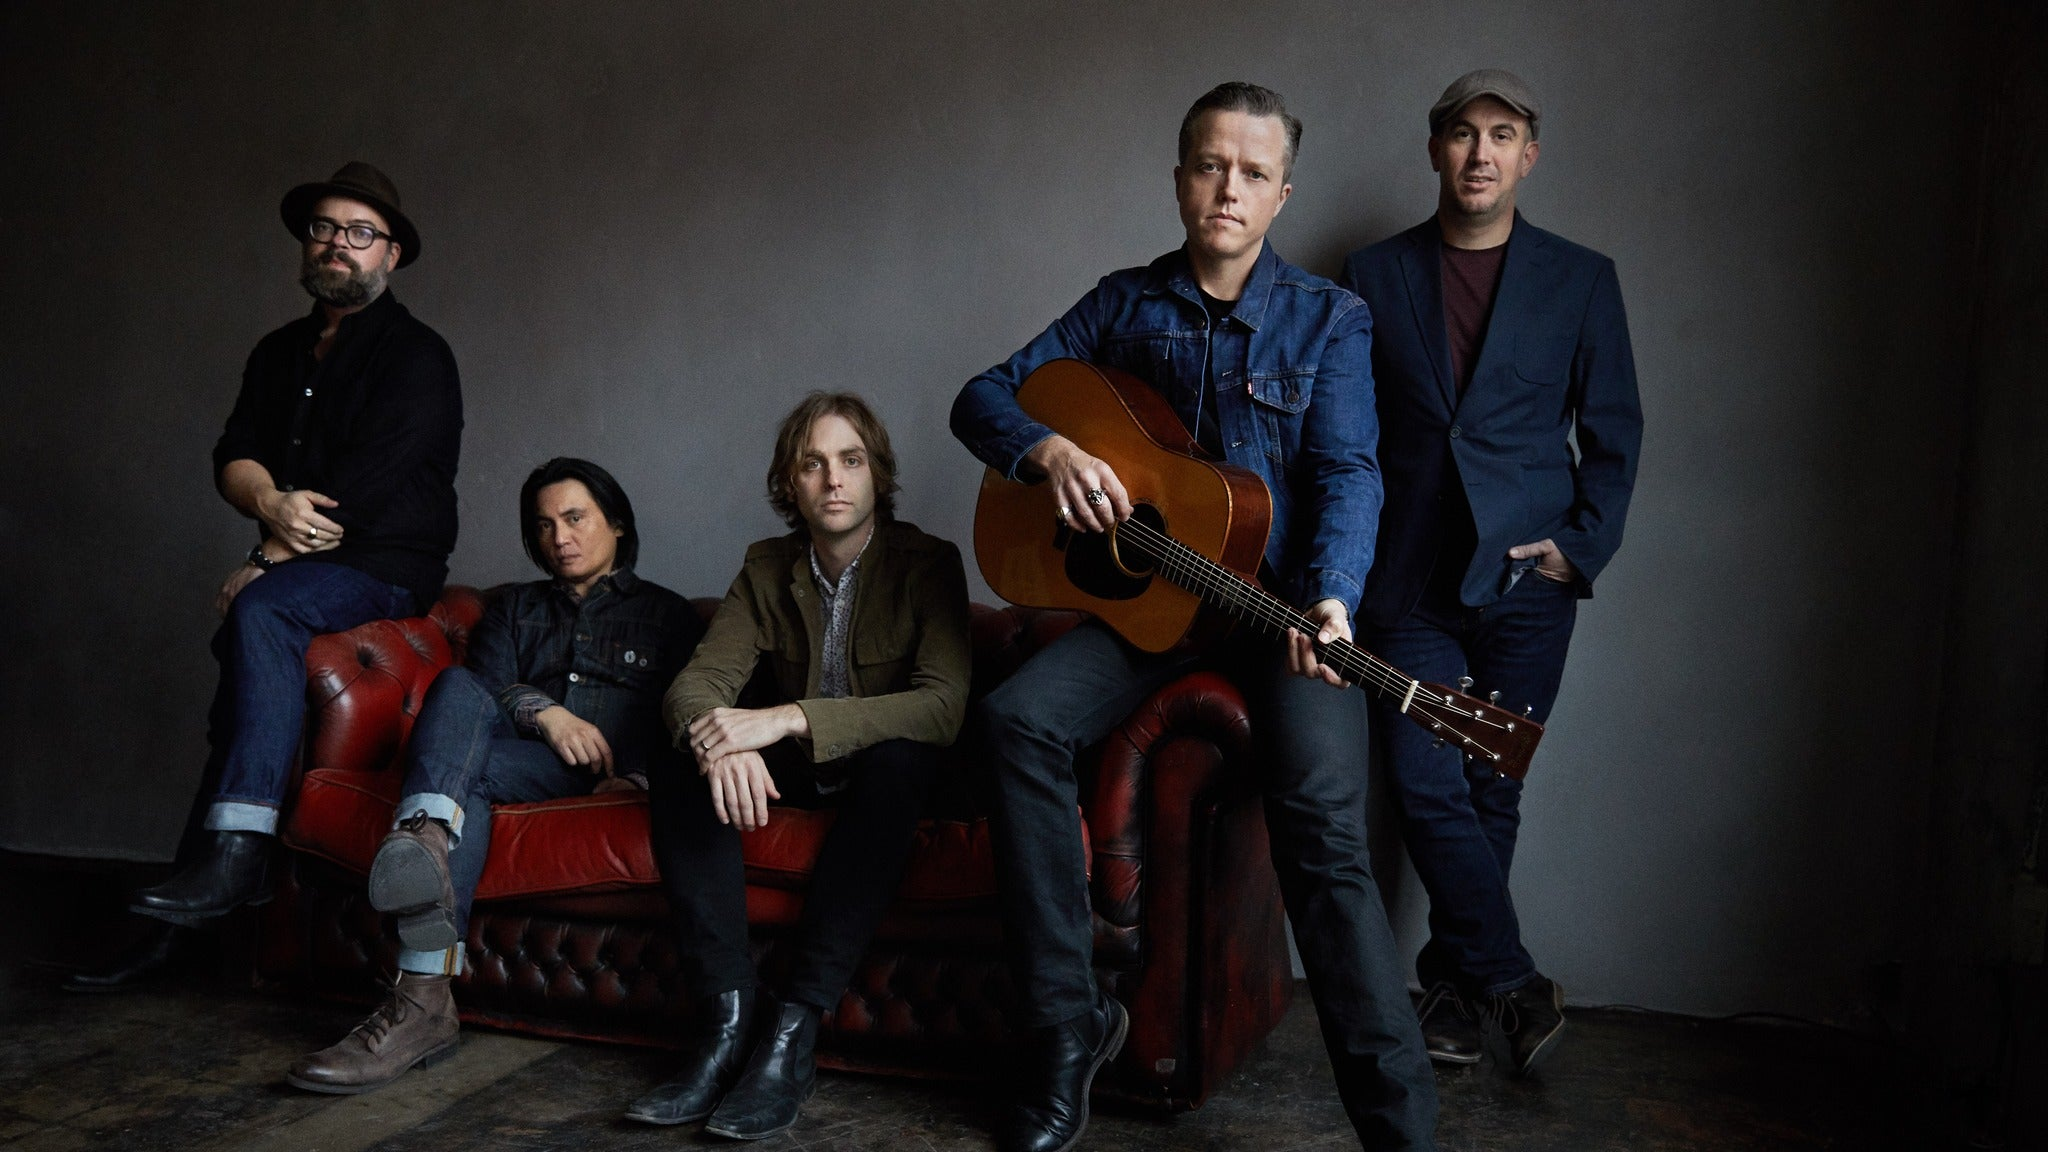 Jason Isbell & the 400 Unit at Saenger Theatre Mobile